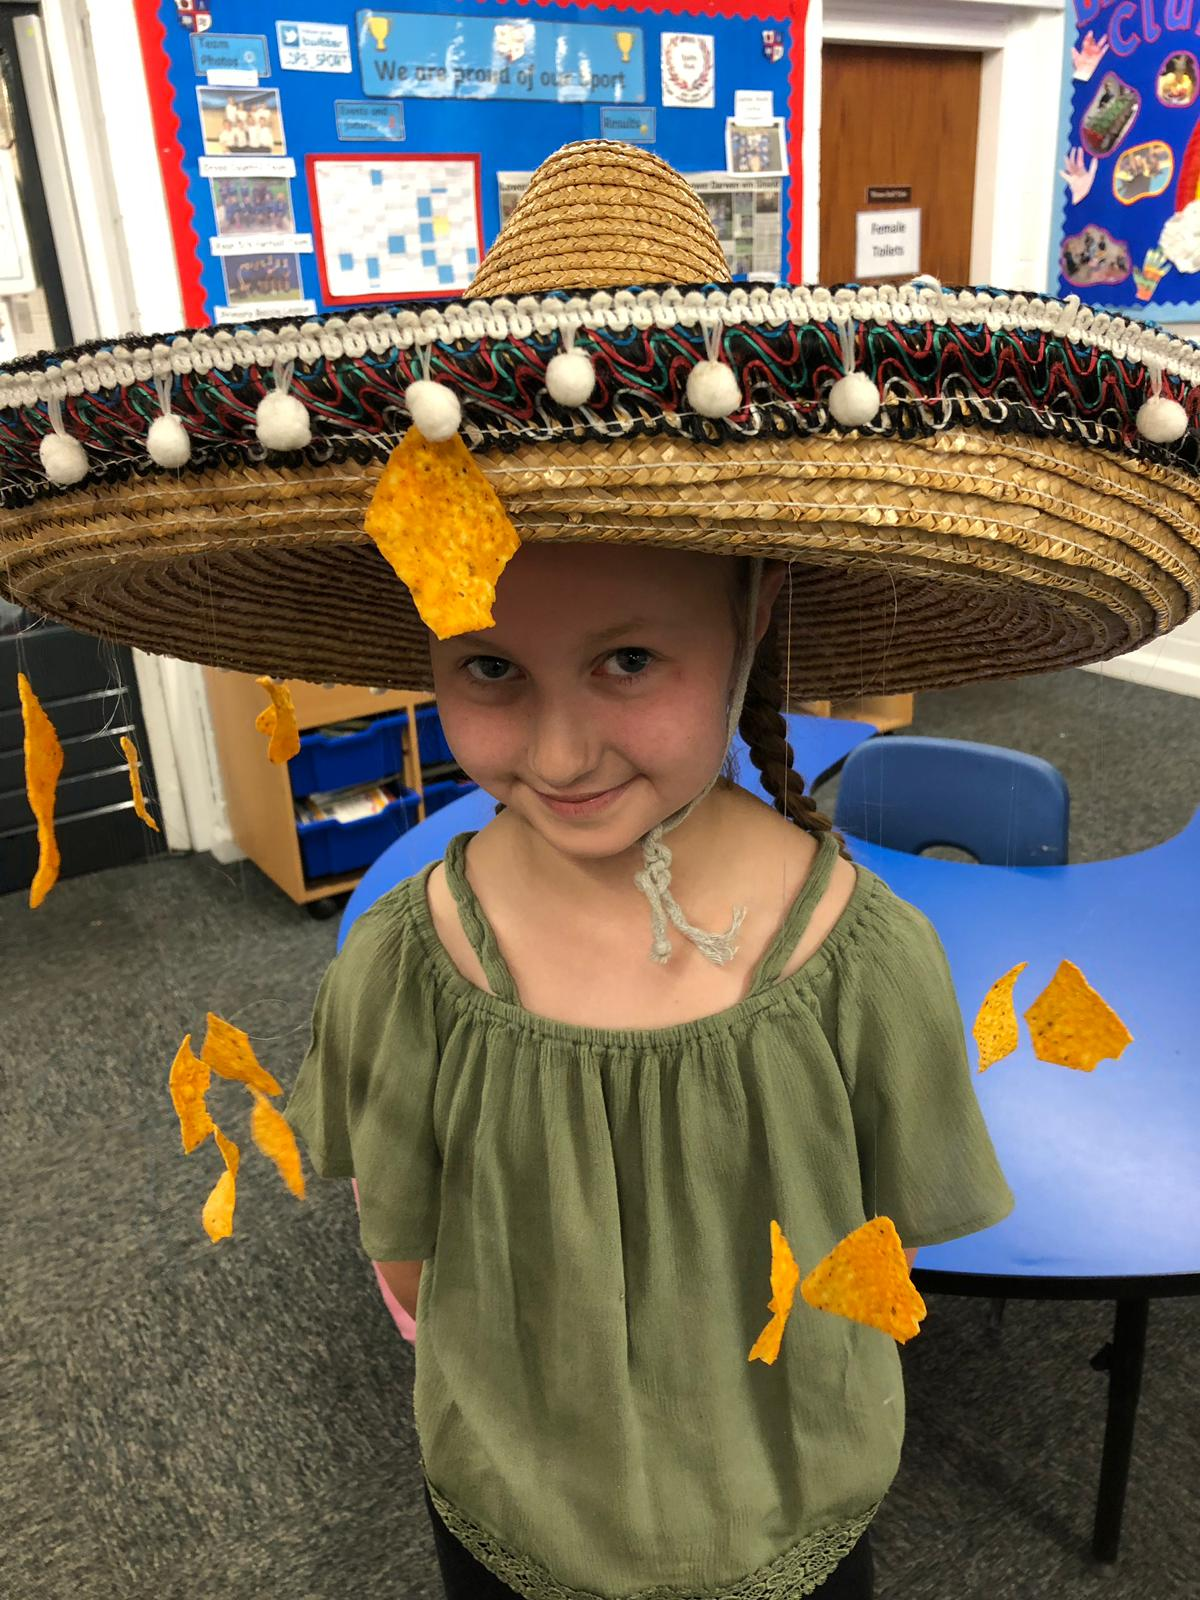 Silly Hat Day 29 2019